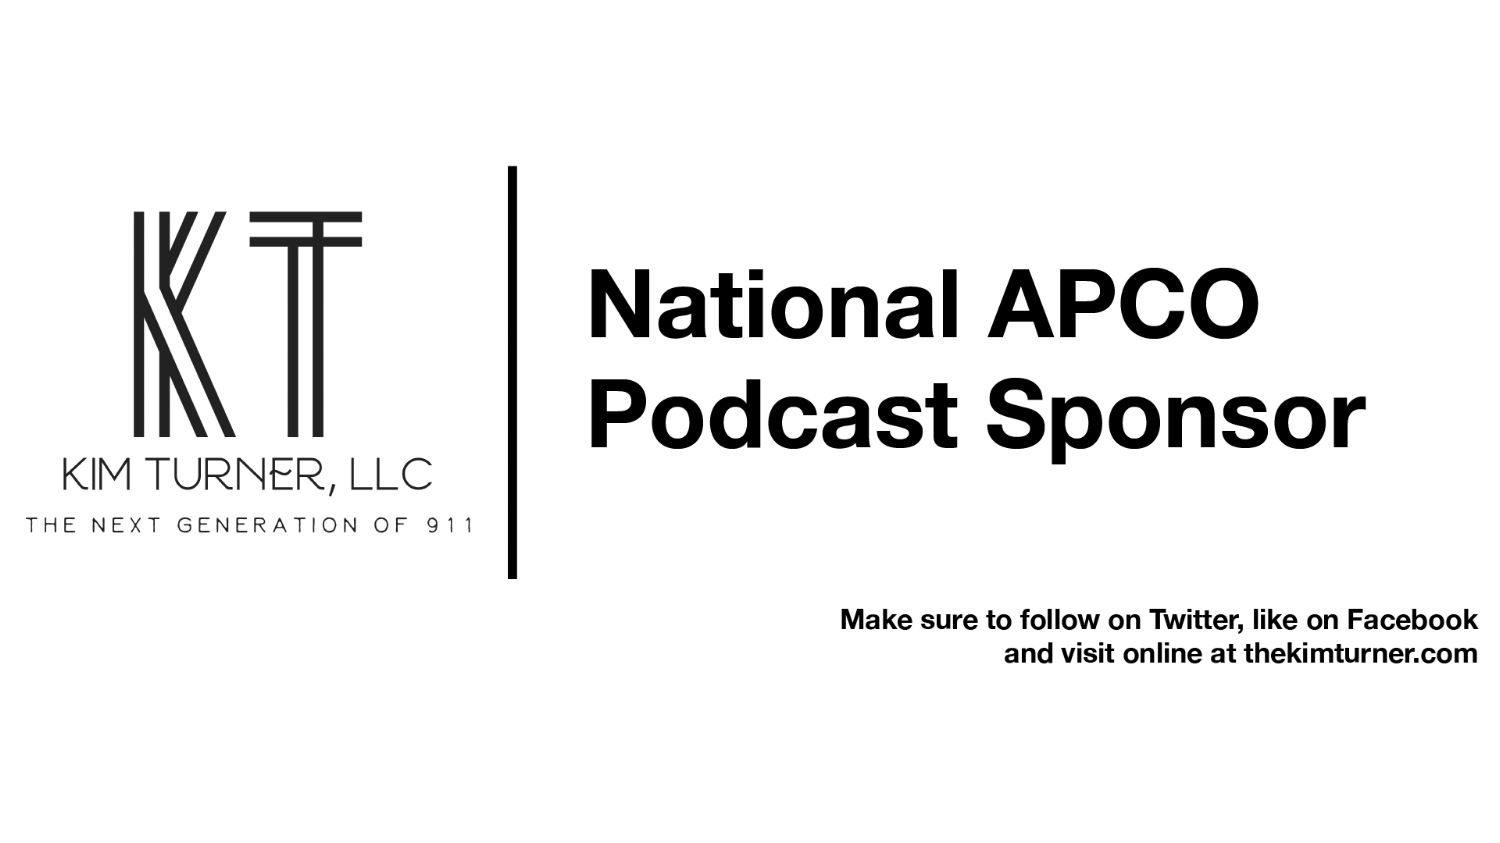 NationalAPCOSponsor-01.png